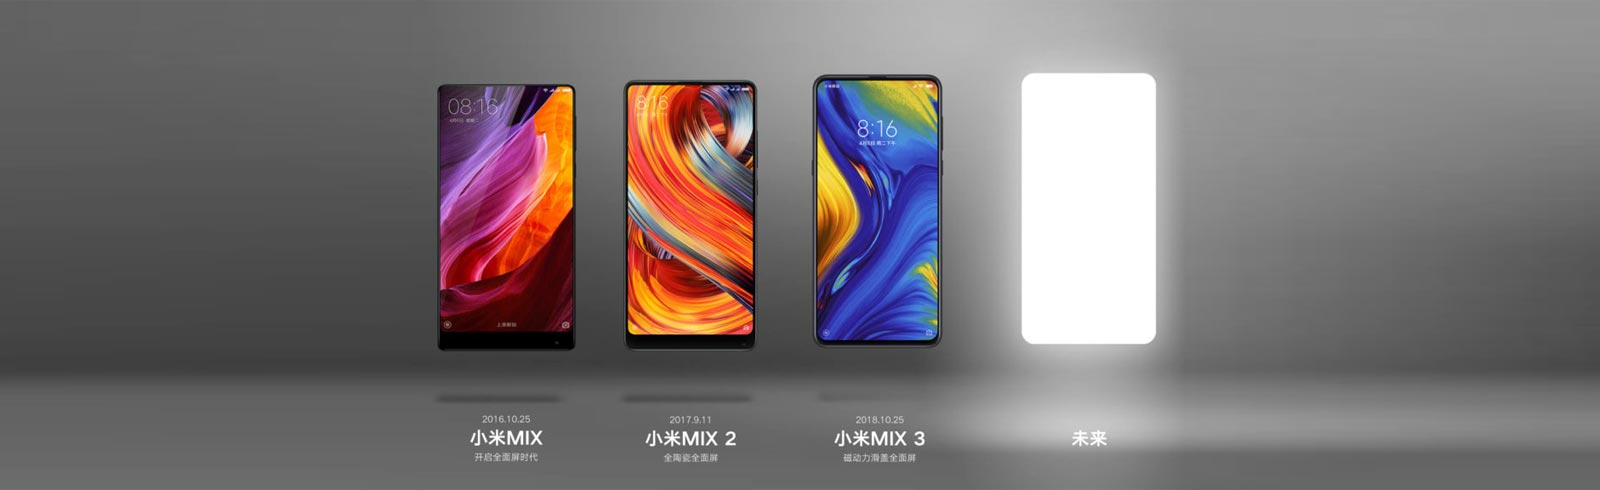 Xiaomi Mi MIX 4, Xiaomi Mi 9S (5G) and MIUI 11 will be presented on September 24th